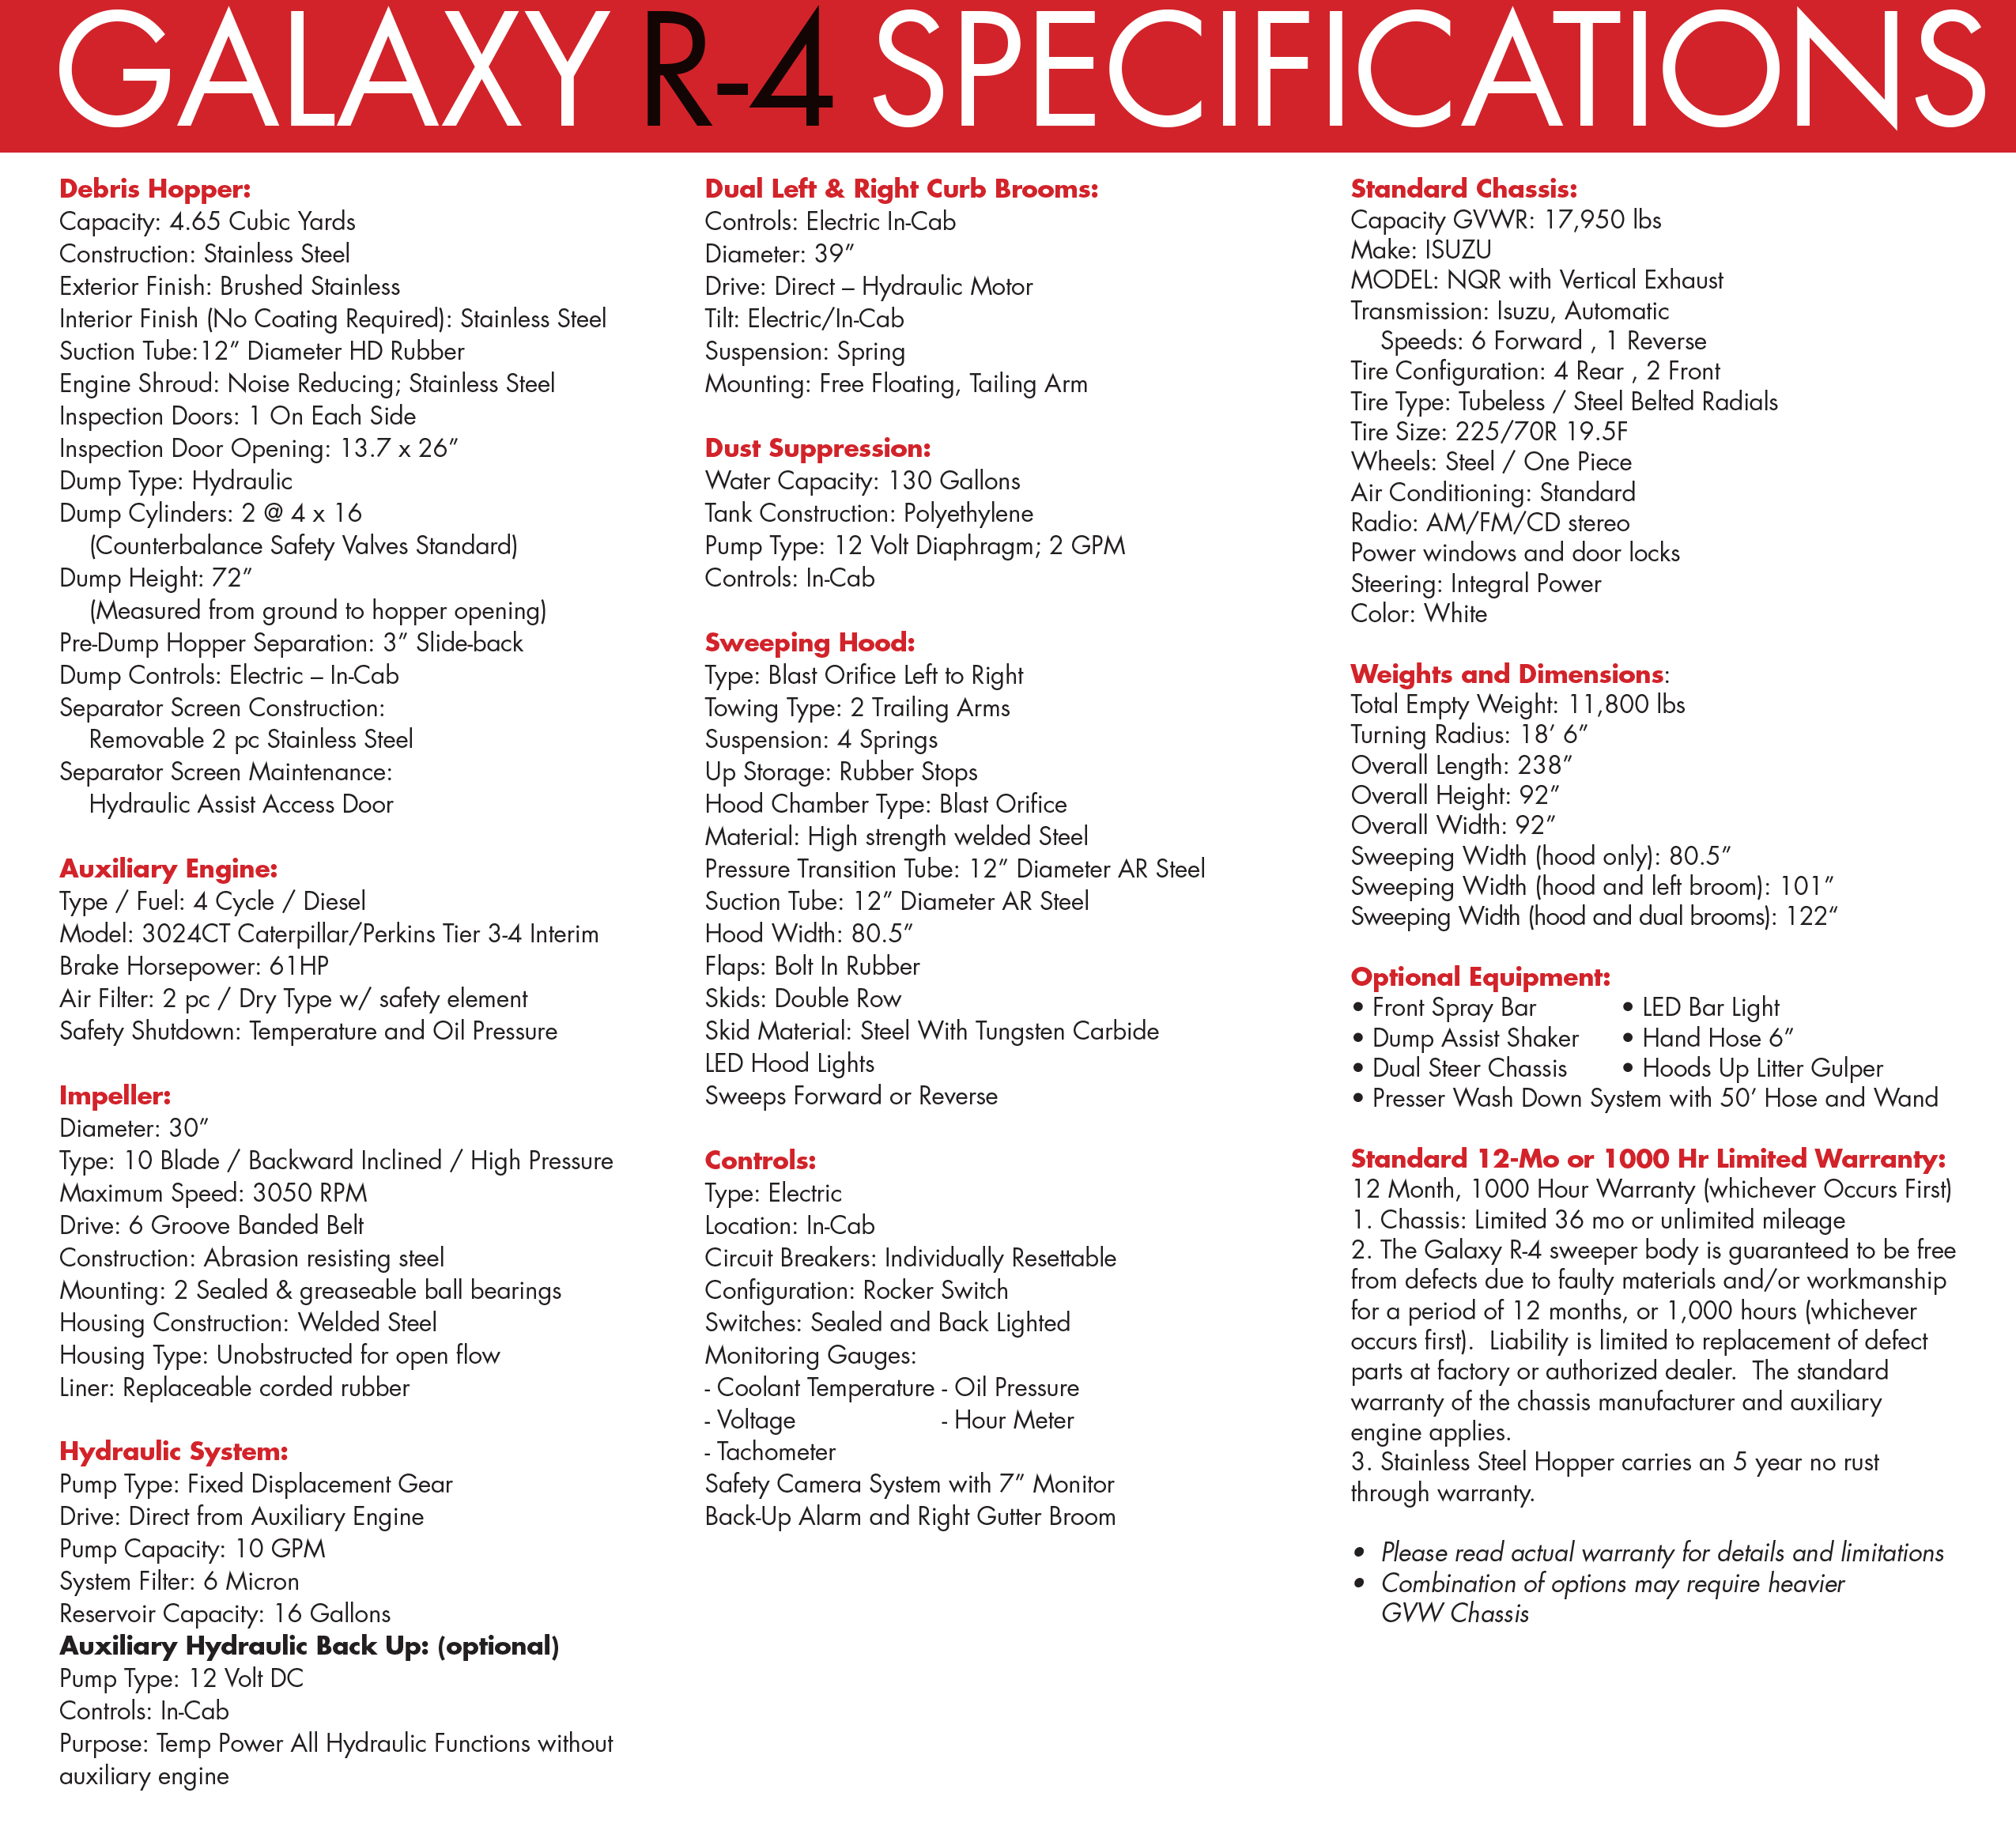 Galaxy R-4 Street Sweeper Specifications